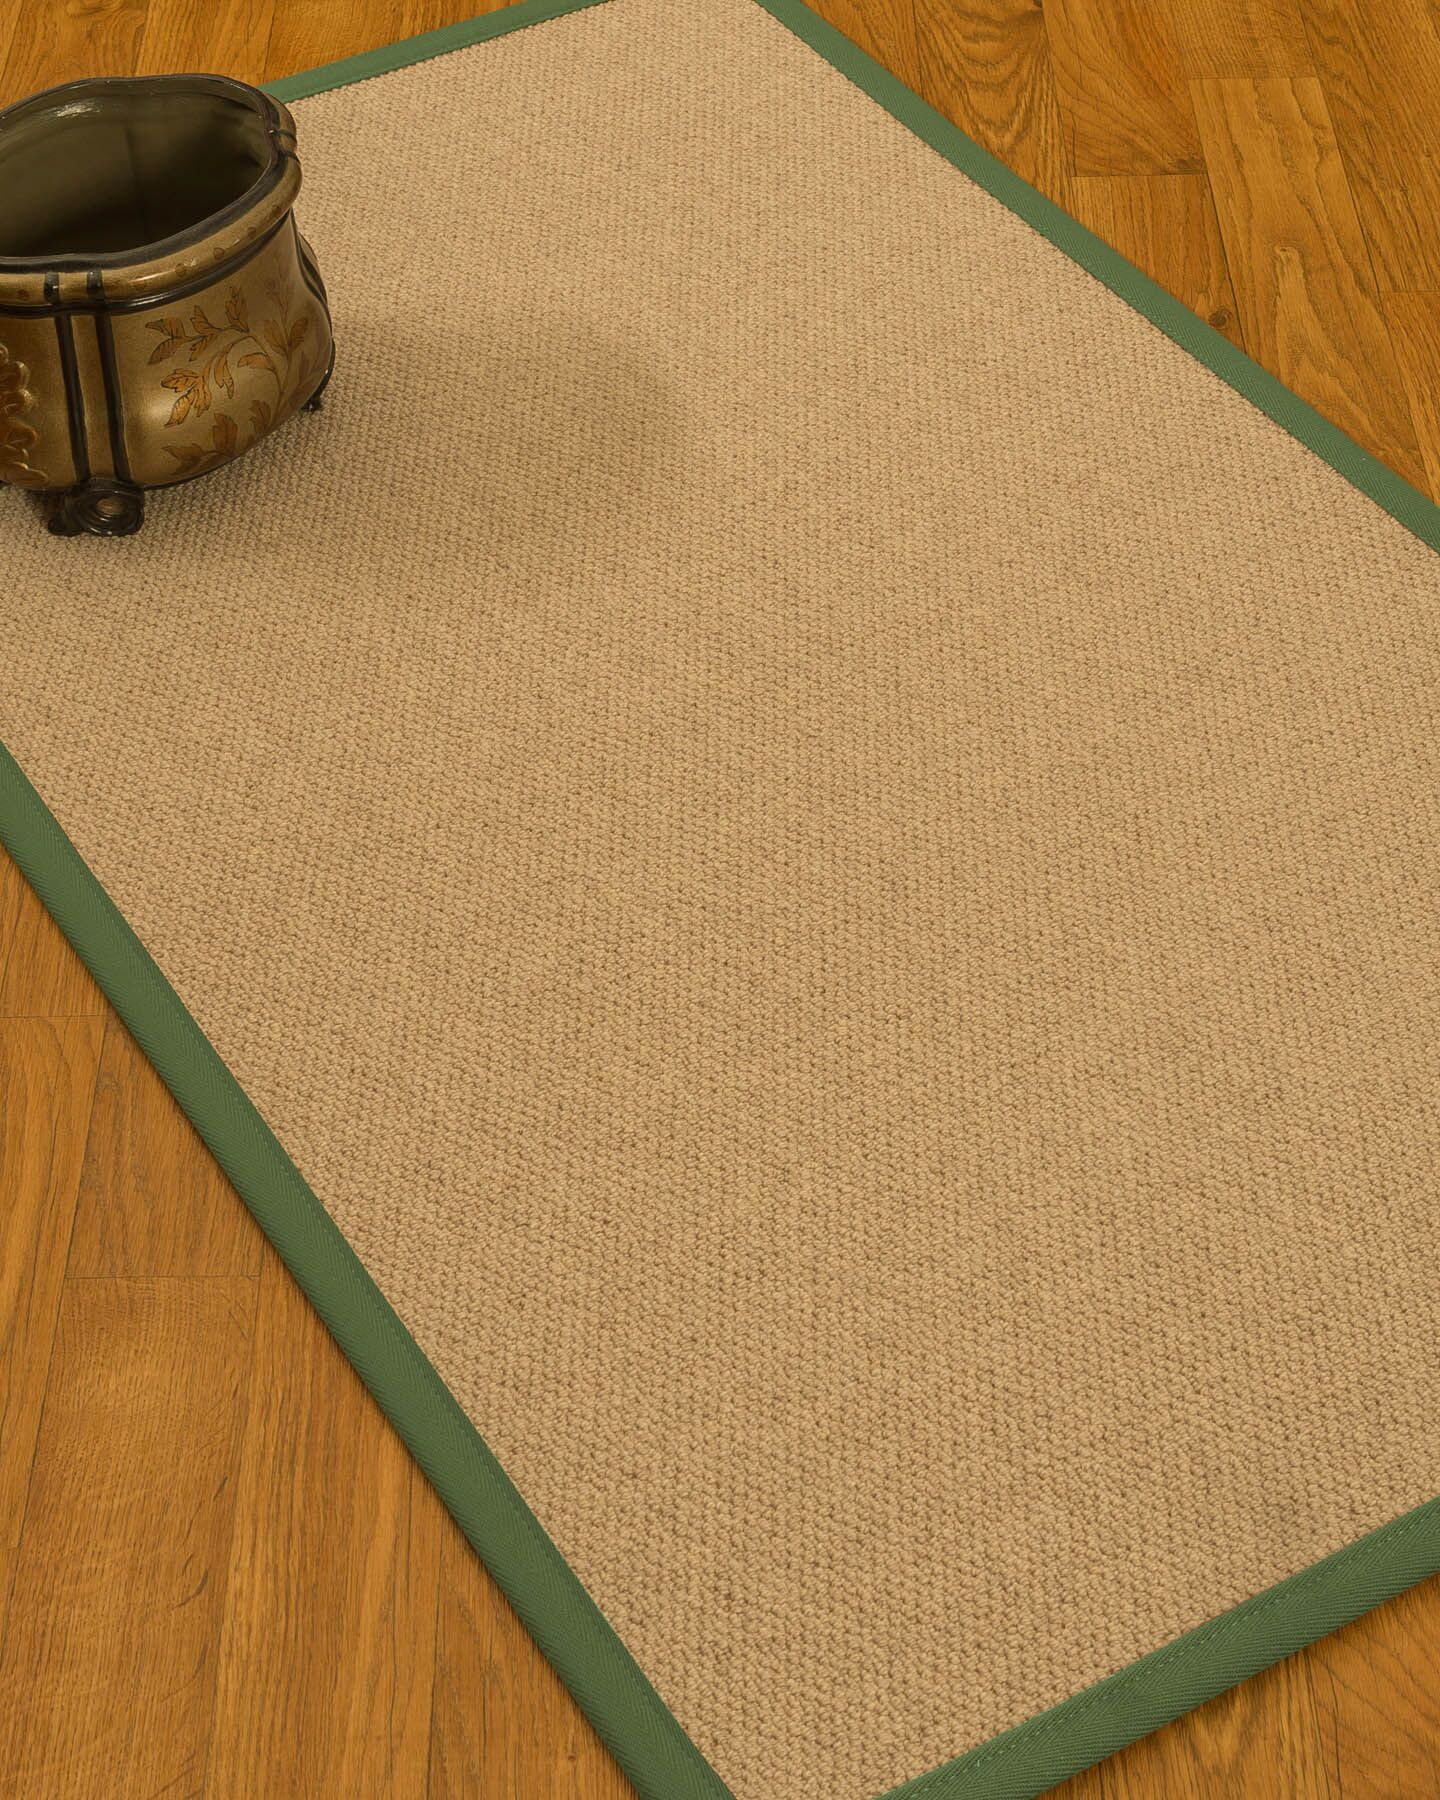 Chavira Border Hand-Woven Wool Beige/Green Area Rug Rug Size: Rectangle 9' x 12', Rug Pad Included: Yes